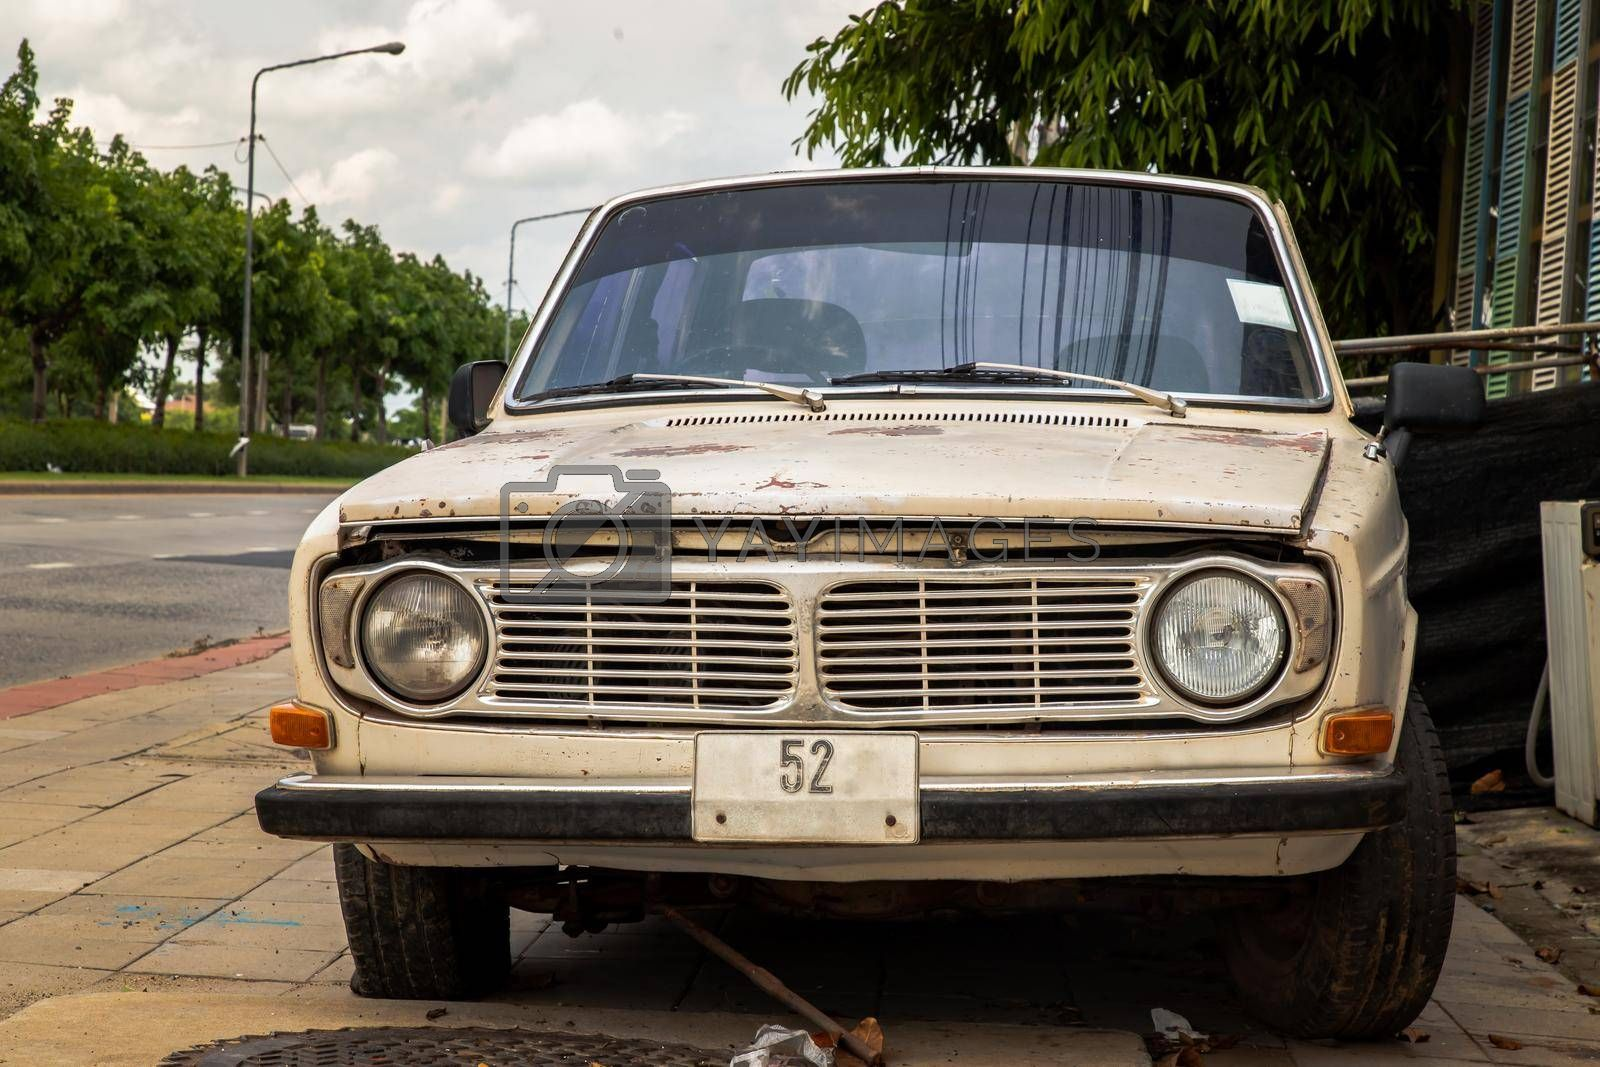 Bangkok,Thailand - May 20, 2021 : Front view of broken and old vintage car were left at the road side. Selective focus.